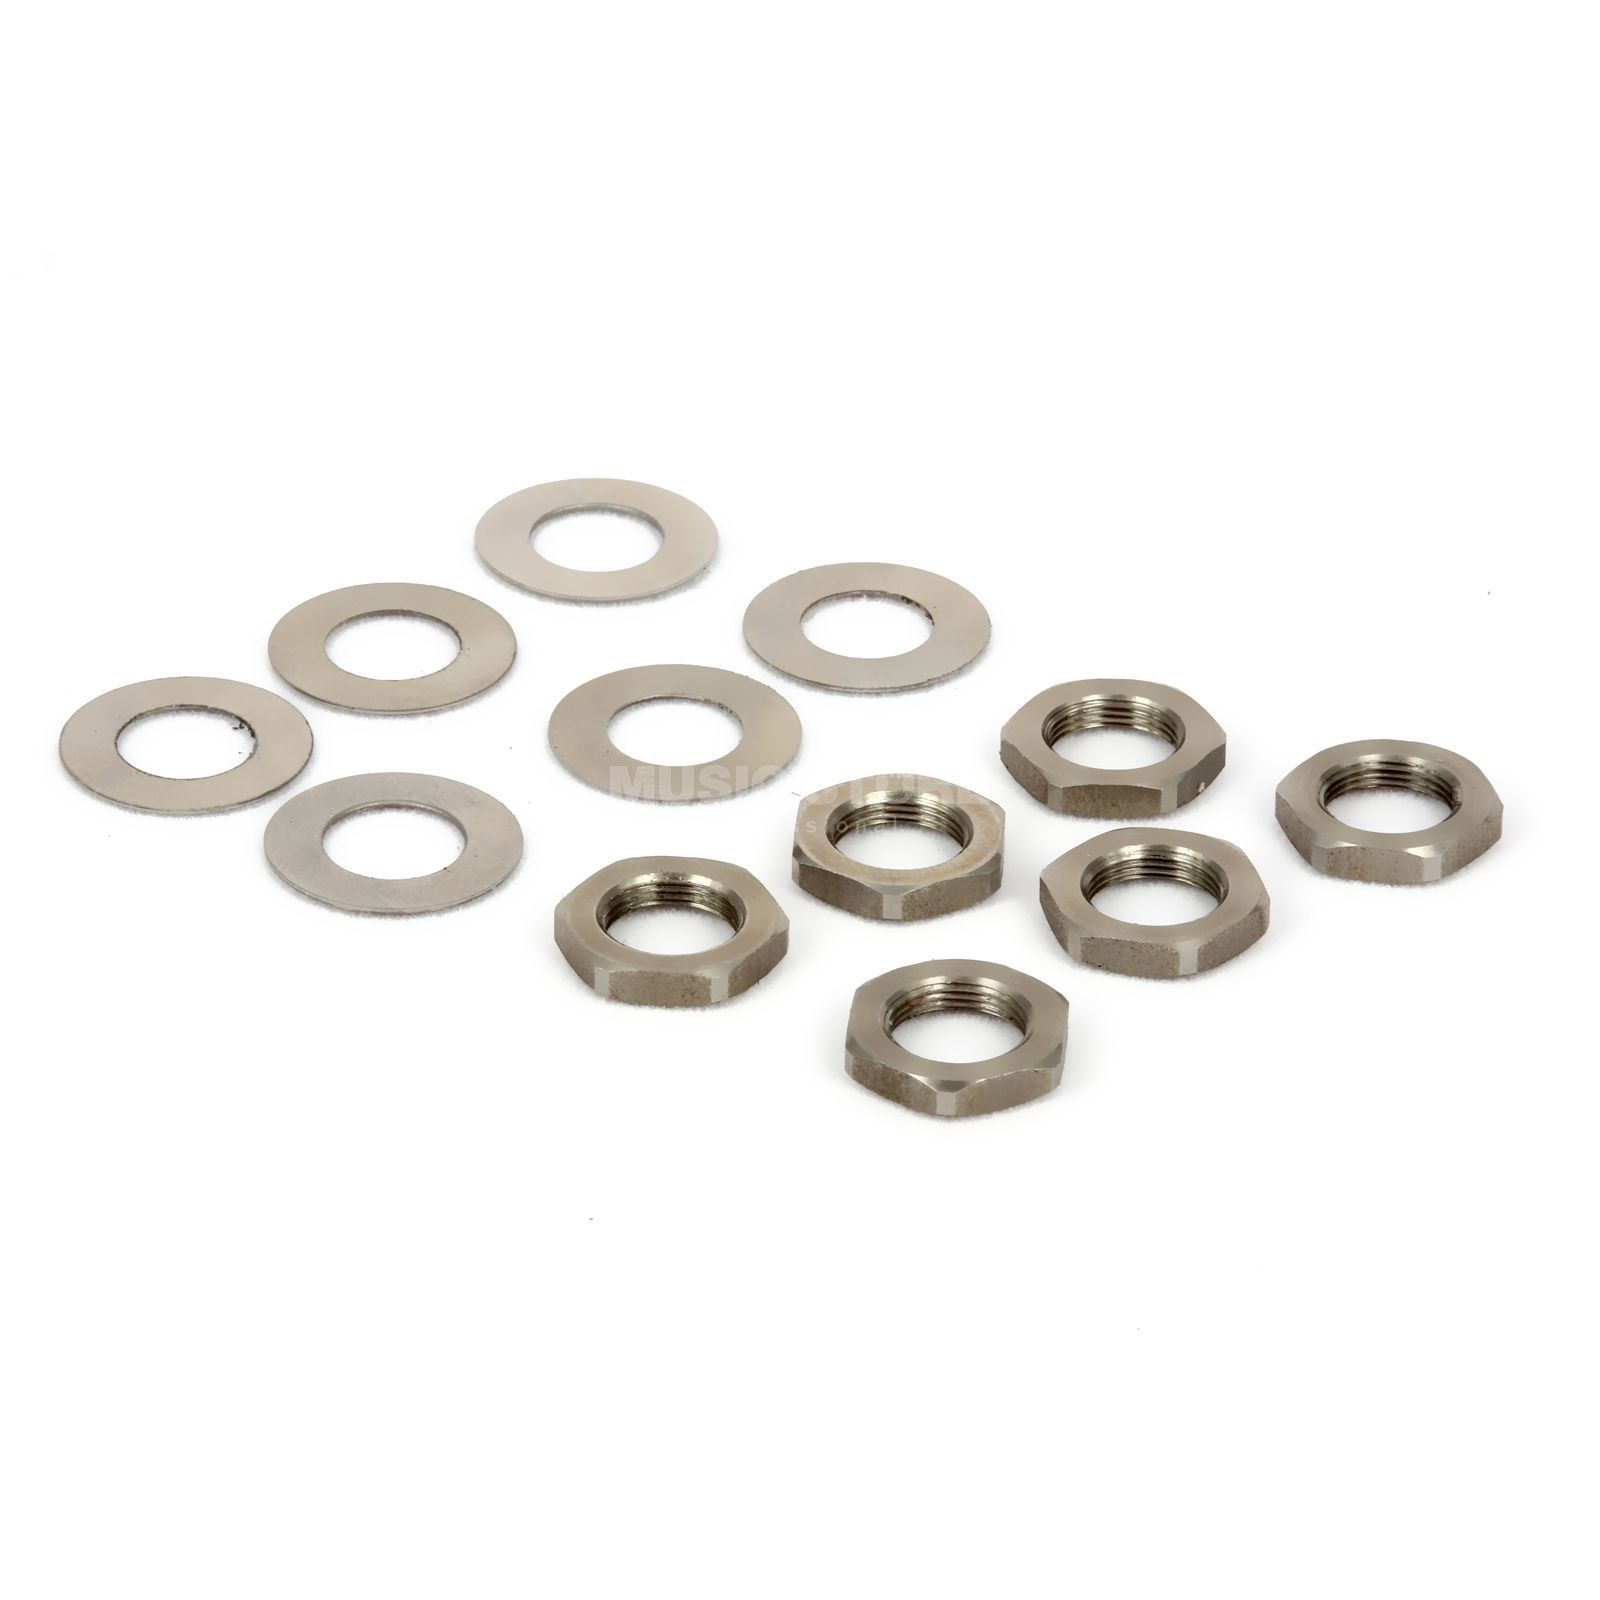 Tronical GmbH Hex Nut/Washer 6er Set Nickel Produktbild